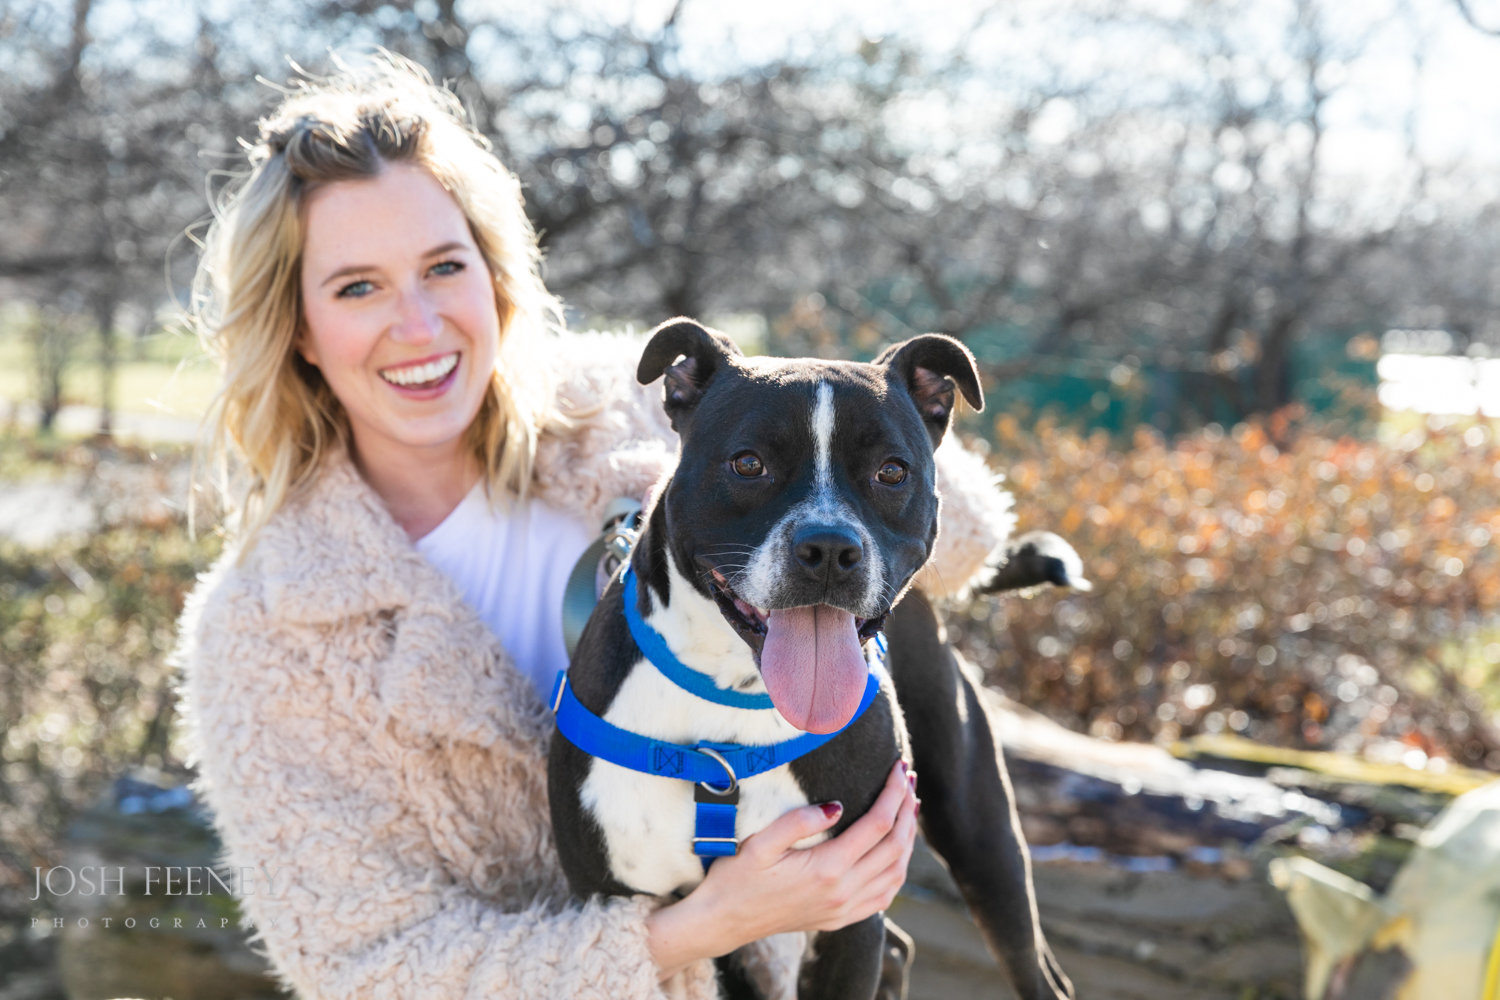 A rescue giving life to dogs in need of second chances.